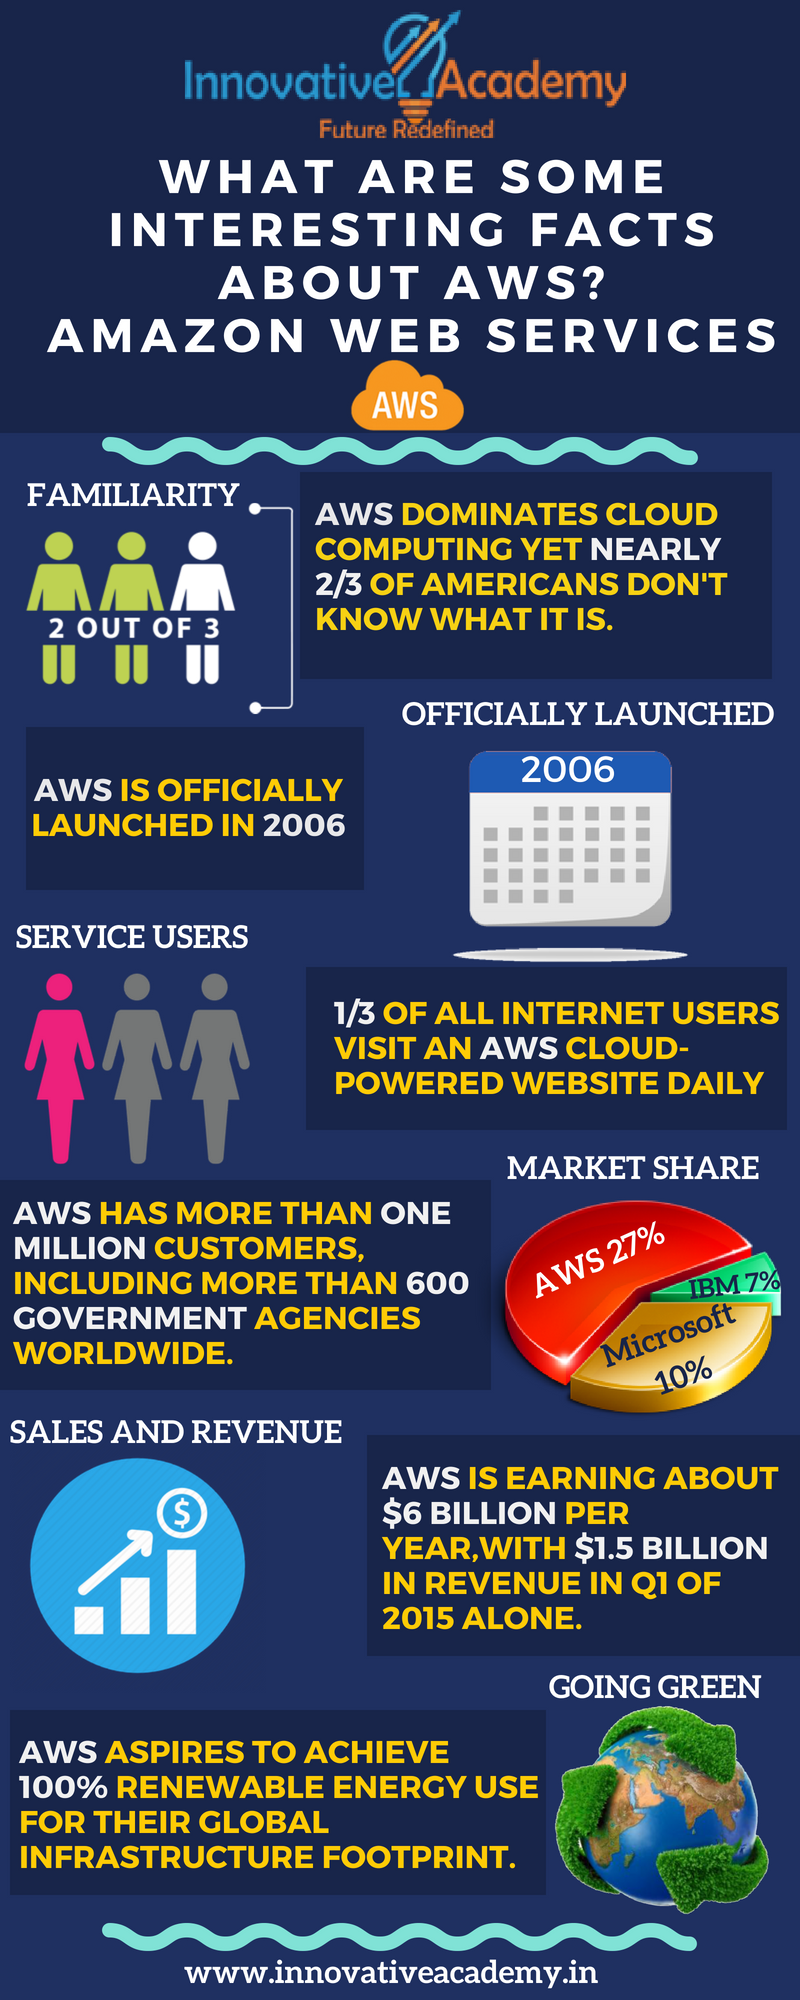 Superior Beautiful What Are Some Interesting Facts About AWS? Amazon Web Services Is  A Cloud Computing